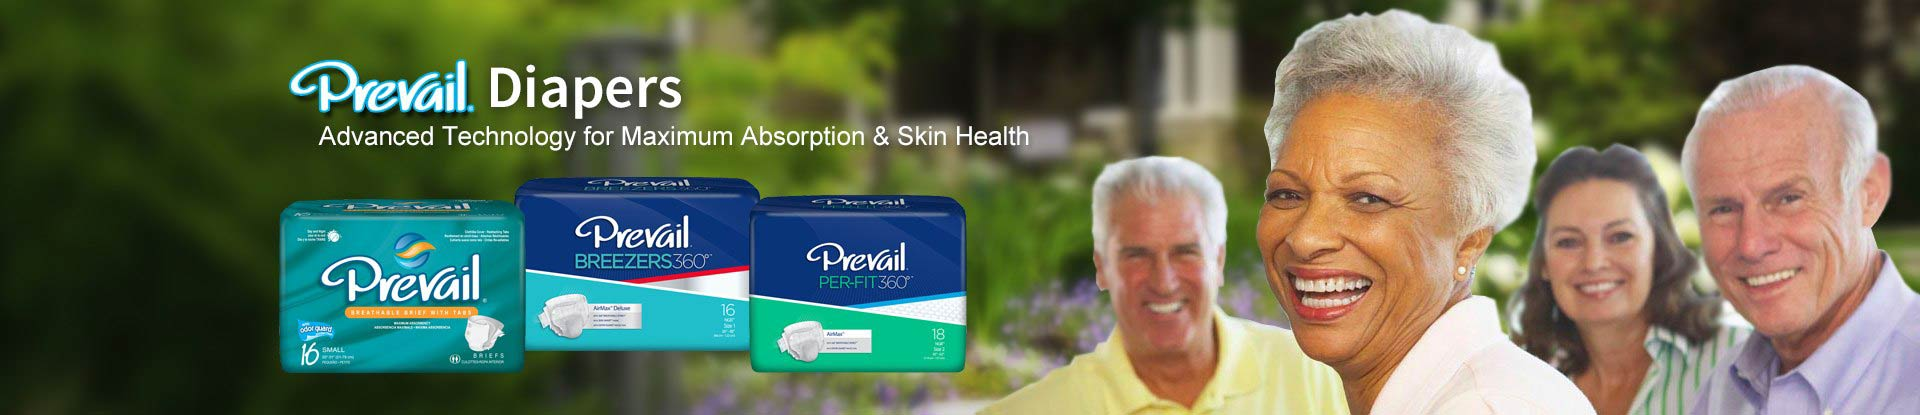 Prevail Diapers